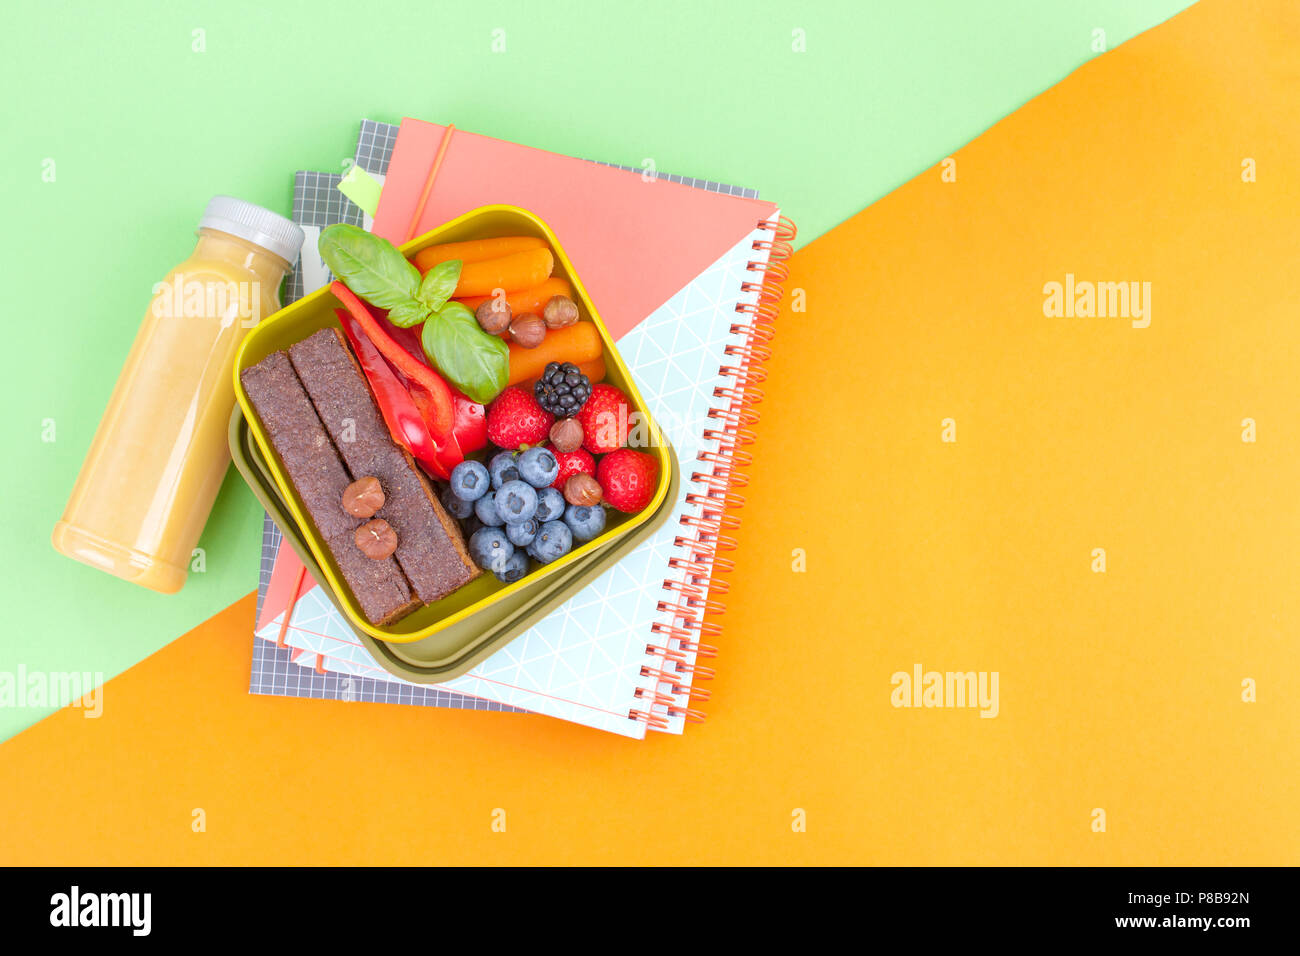 Lunch box with healthy food and juice from fresh berries. Toast and apple. books for school and green background. takeaway food. copy space. flat lay - Stock Image